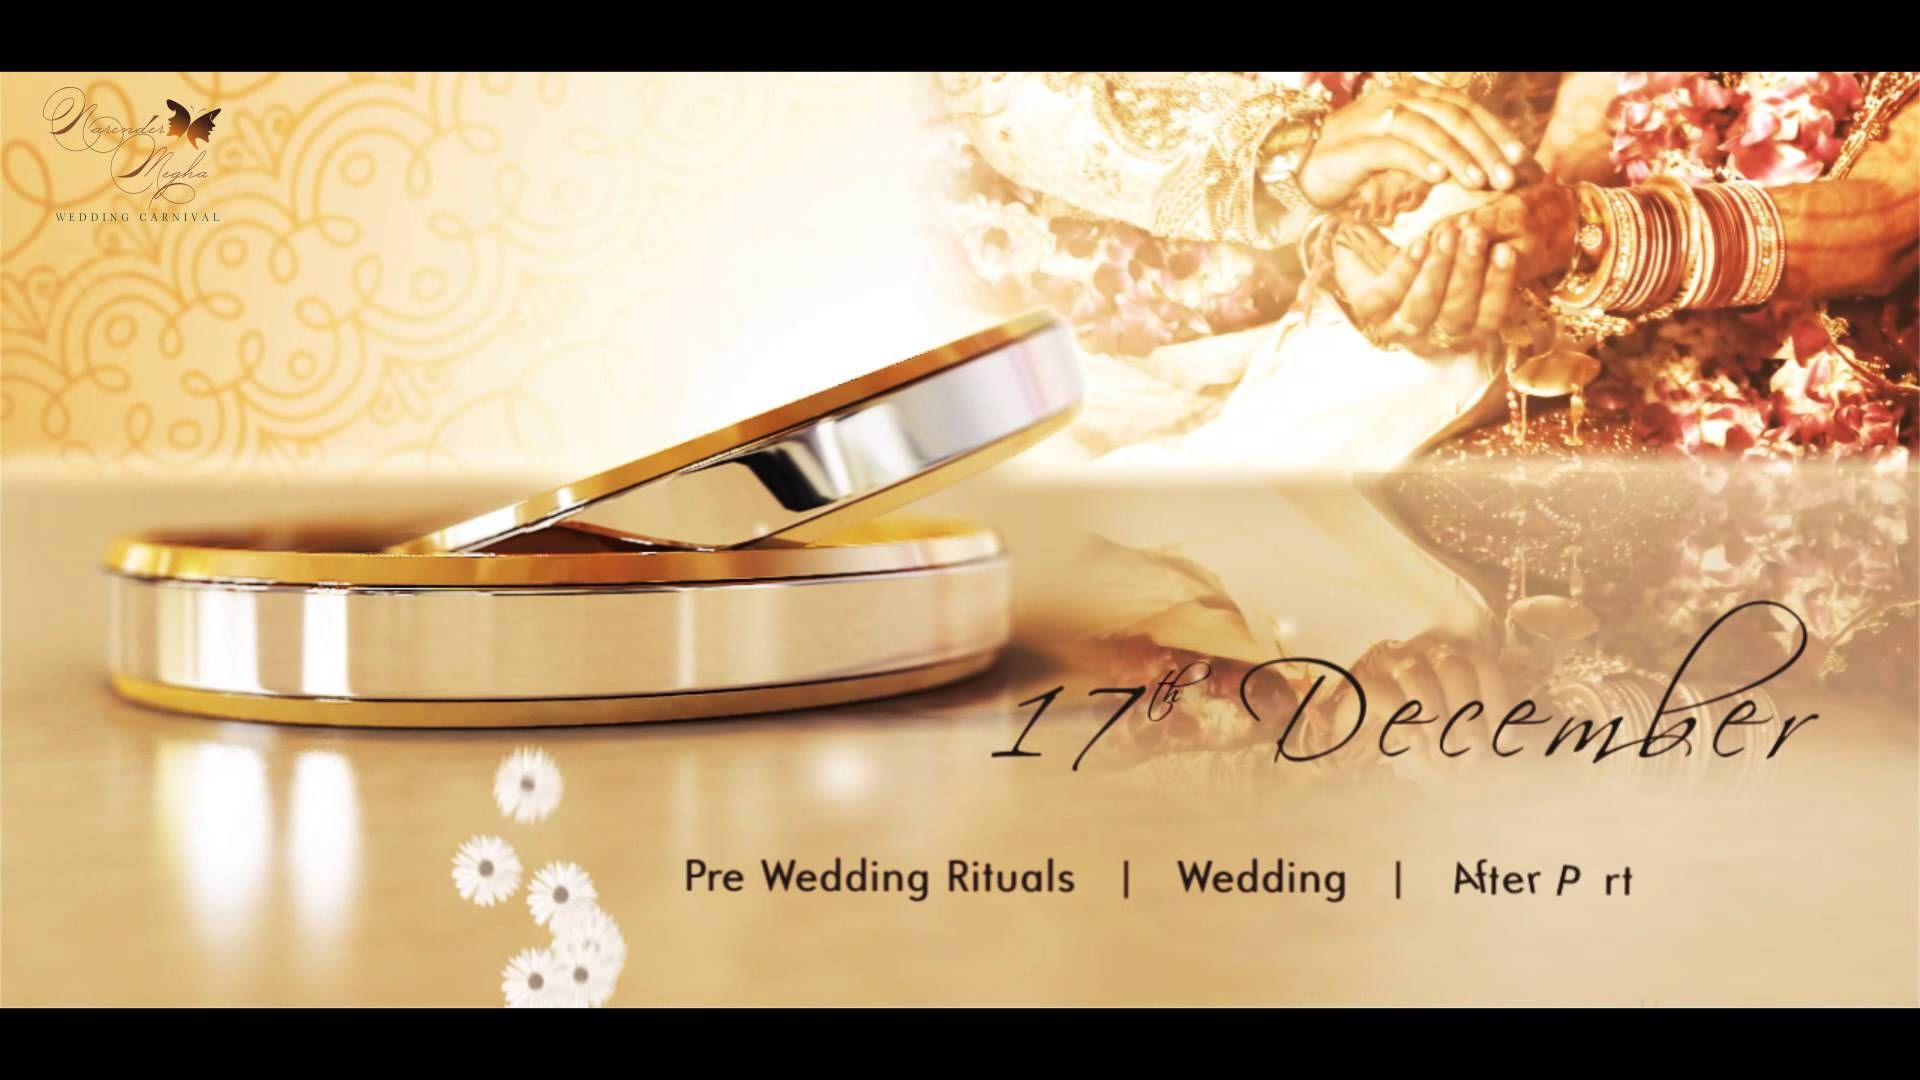 wedding invitation video, video invitation - classy marriage ...